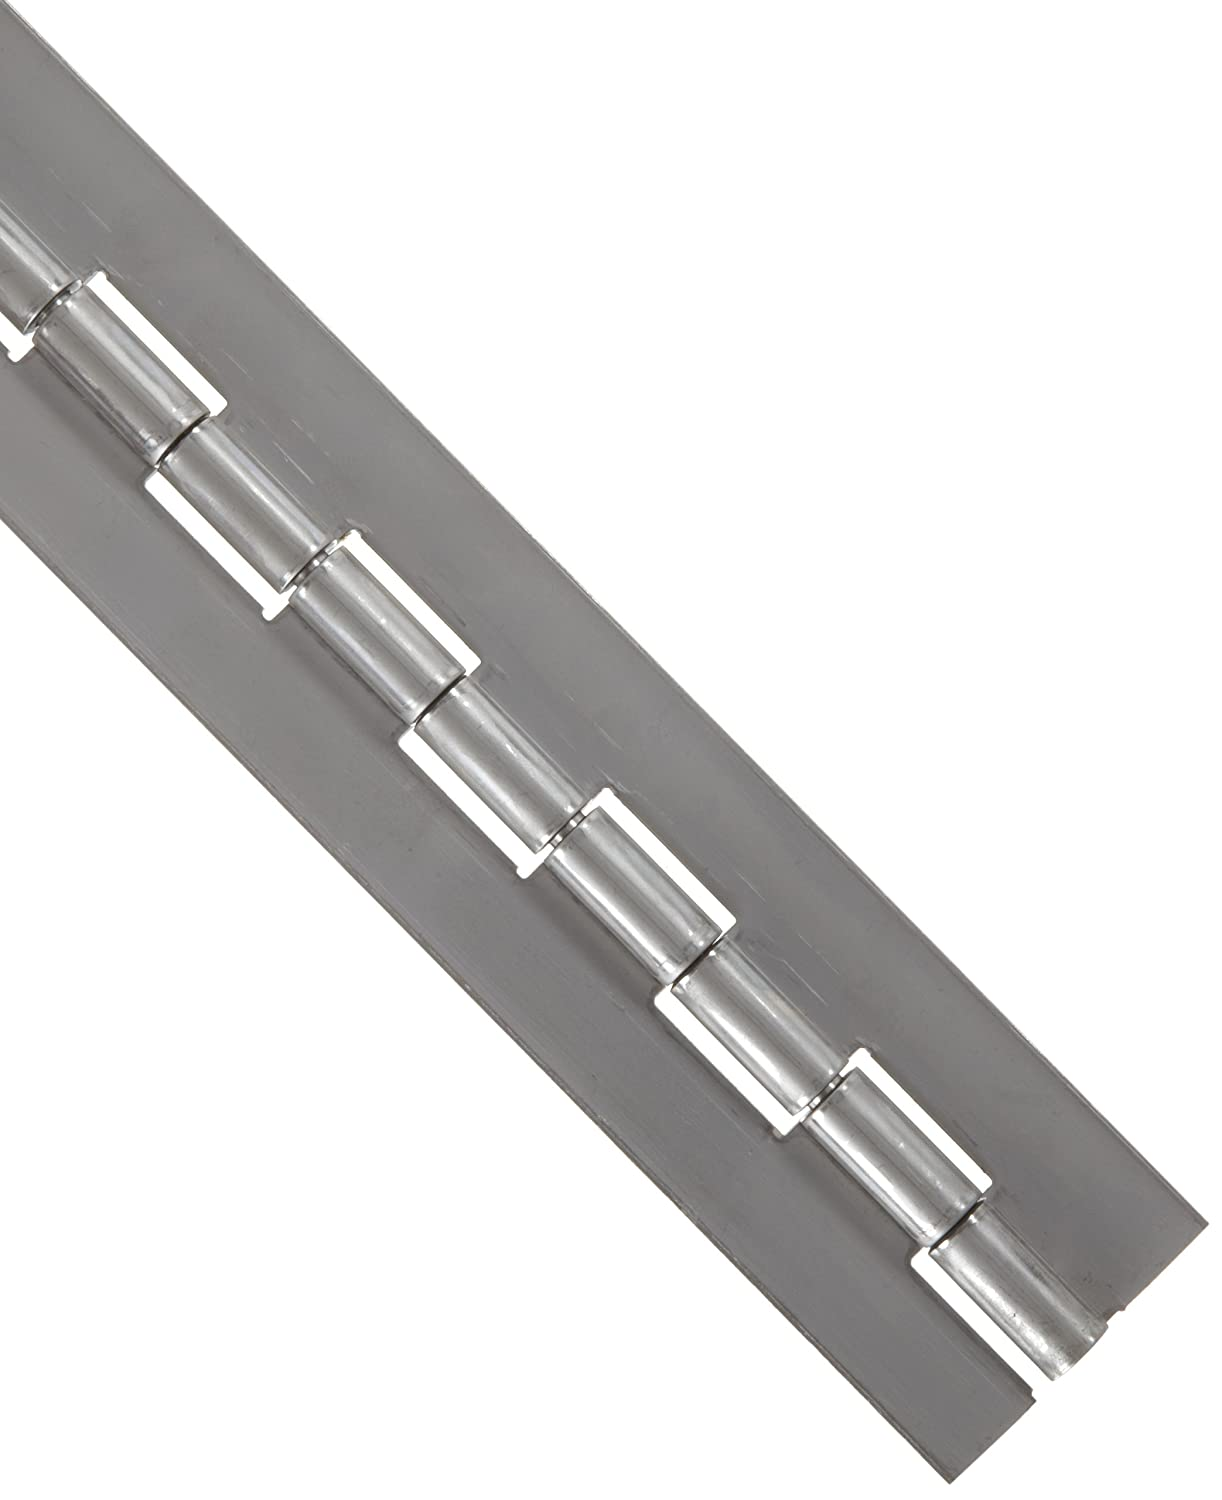 1//4 Pin Diameter Unfinished 6 Long 3 Open Width Pack of 1 Stainless Steel 316 Continuous Hinge without Holes 1 Knuckle Length 0.072 Leaf Thickness